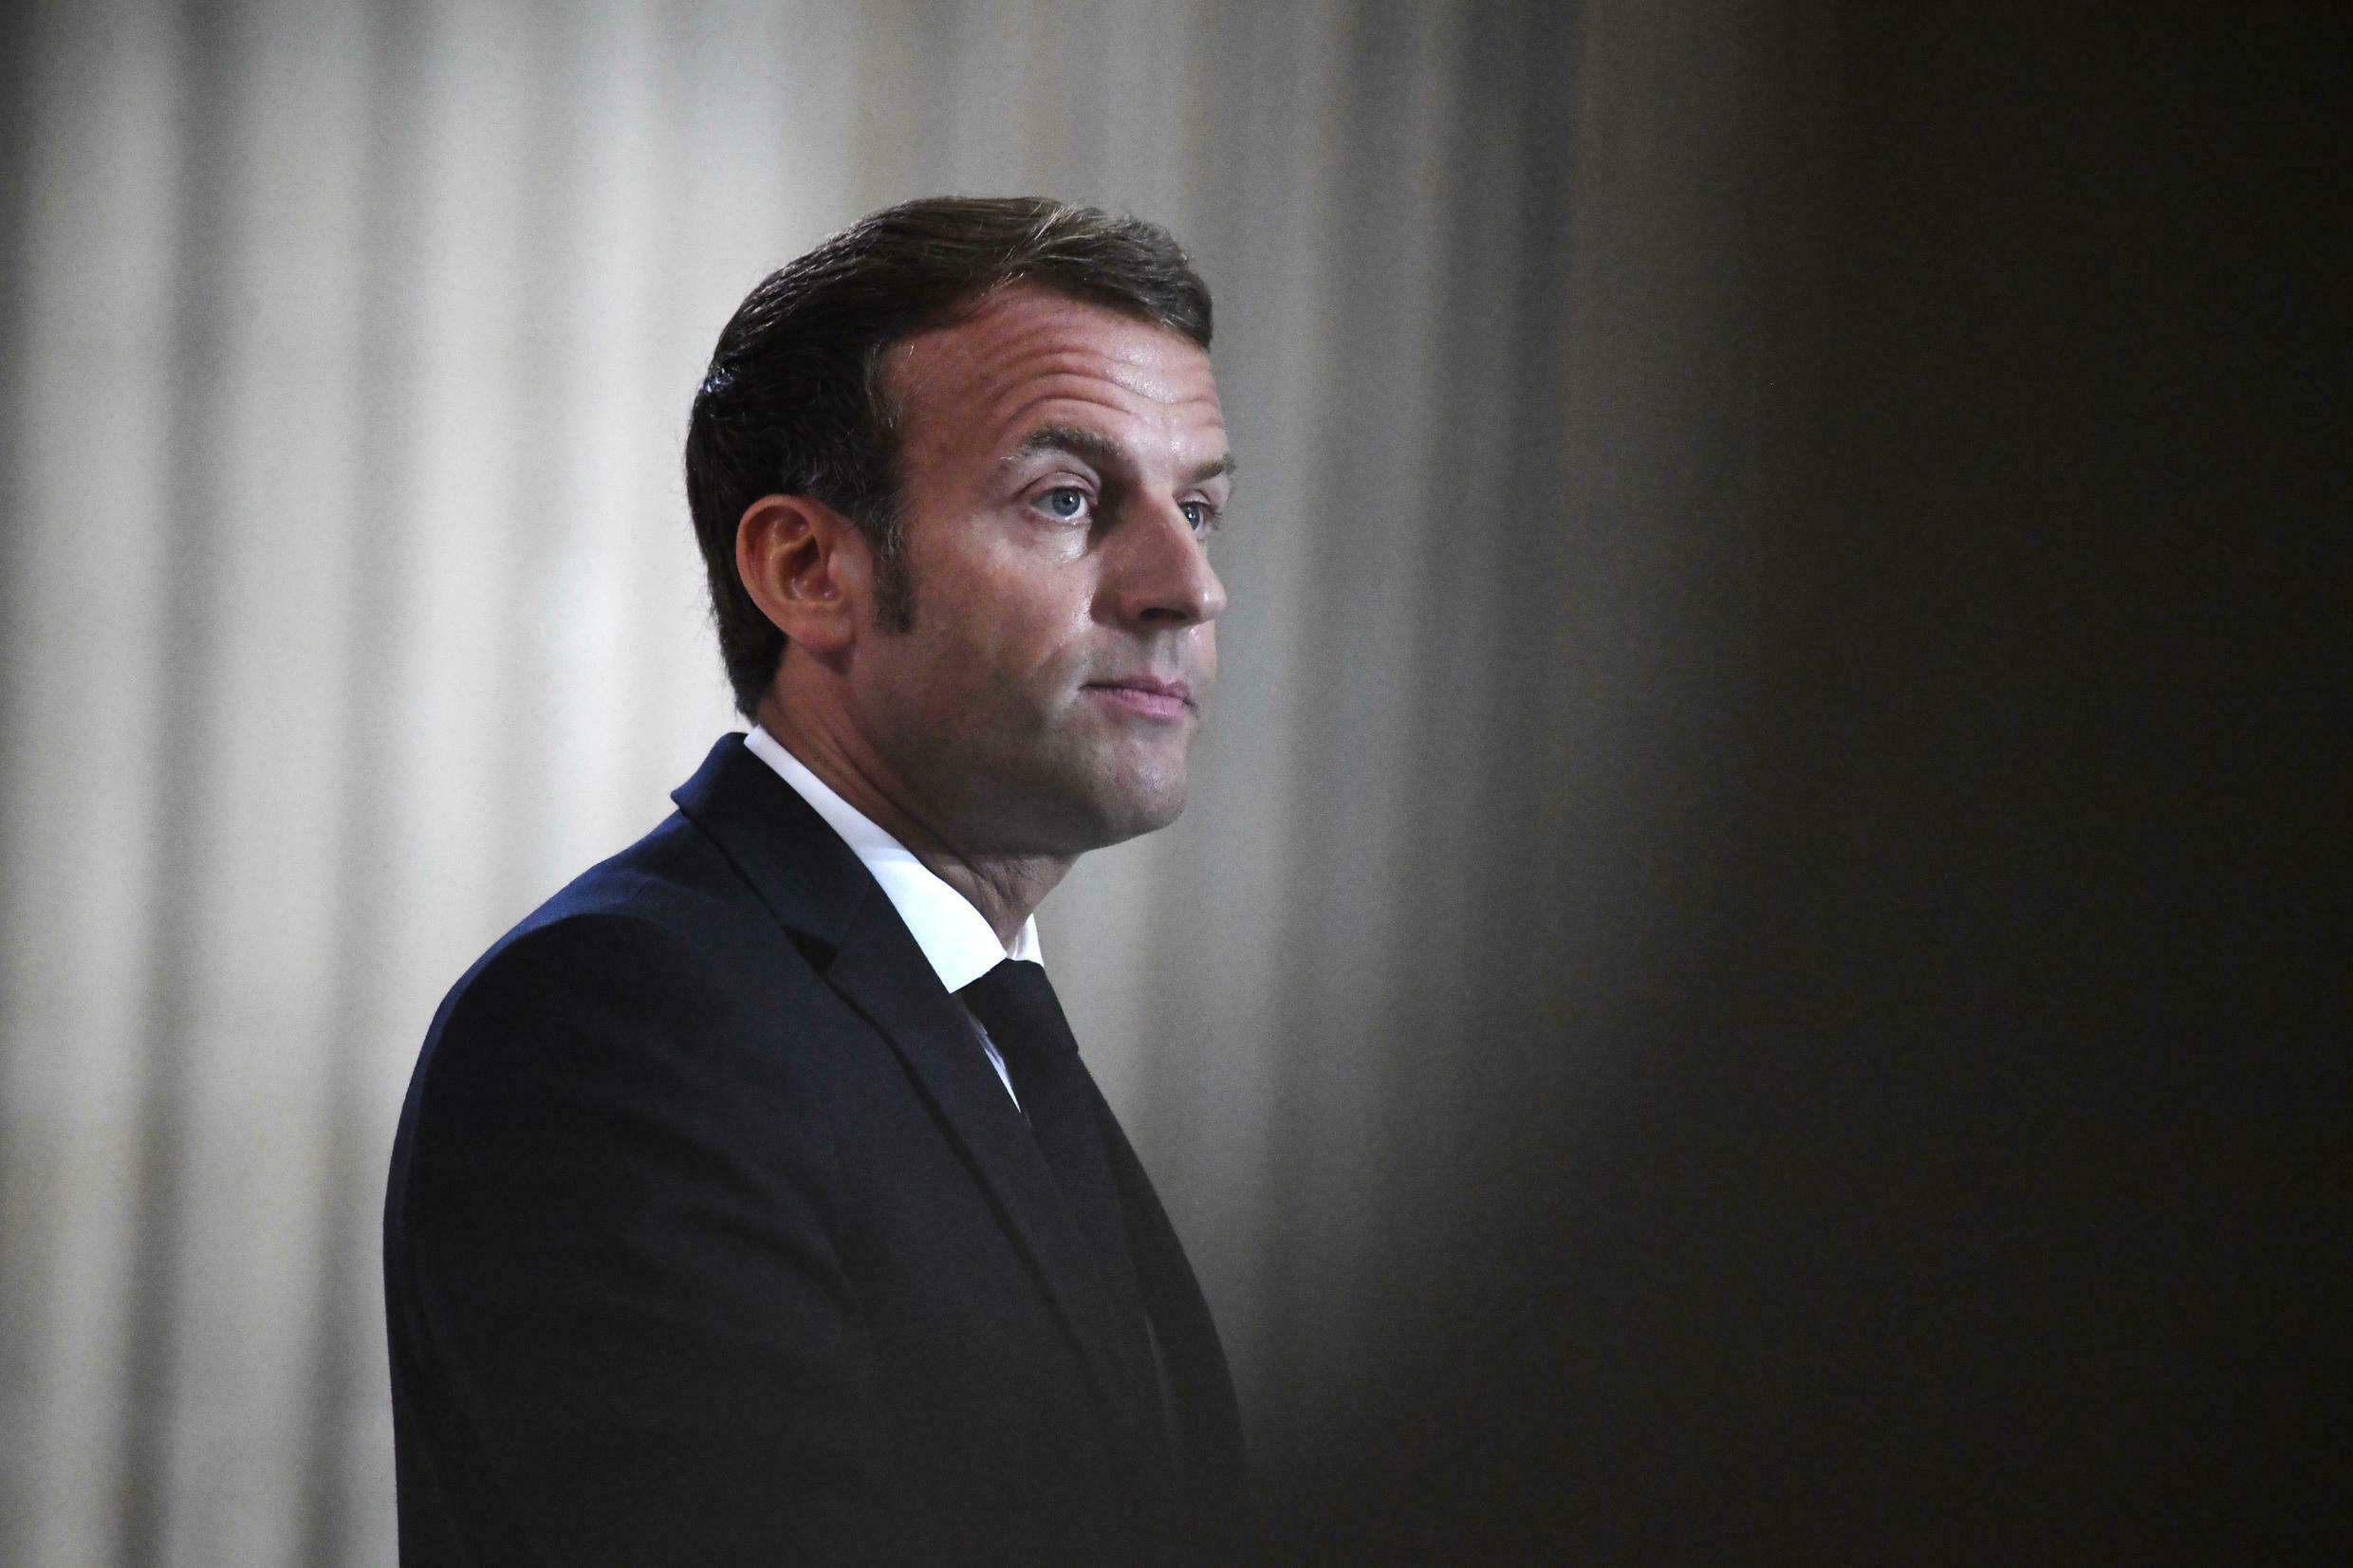 French President Emmanuel Macron warned the United States that Europe will not compromise on the issue of sanctions over Iran's nuclear program